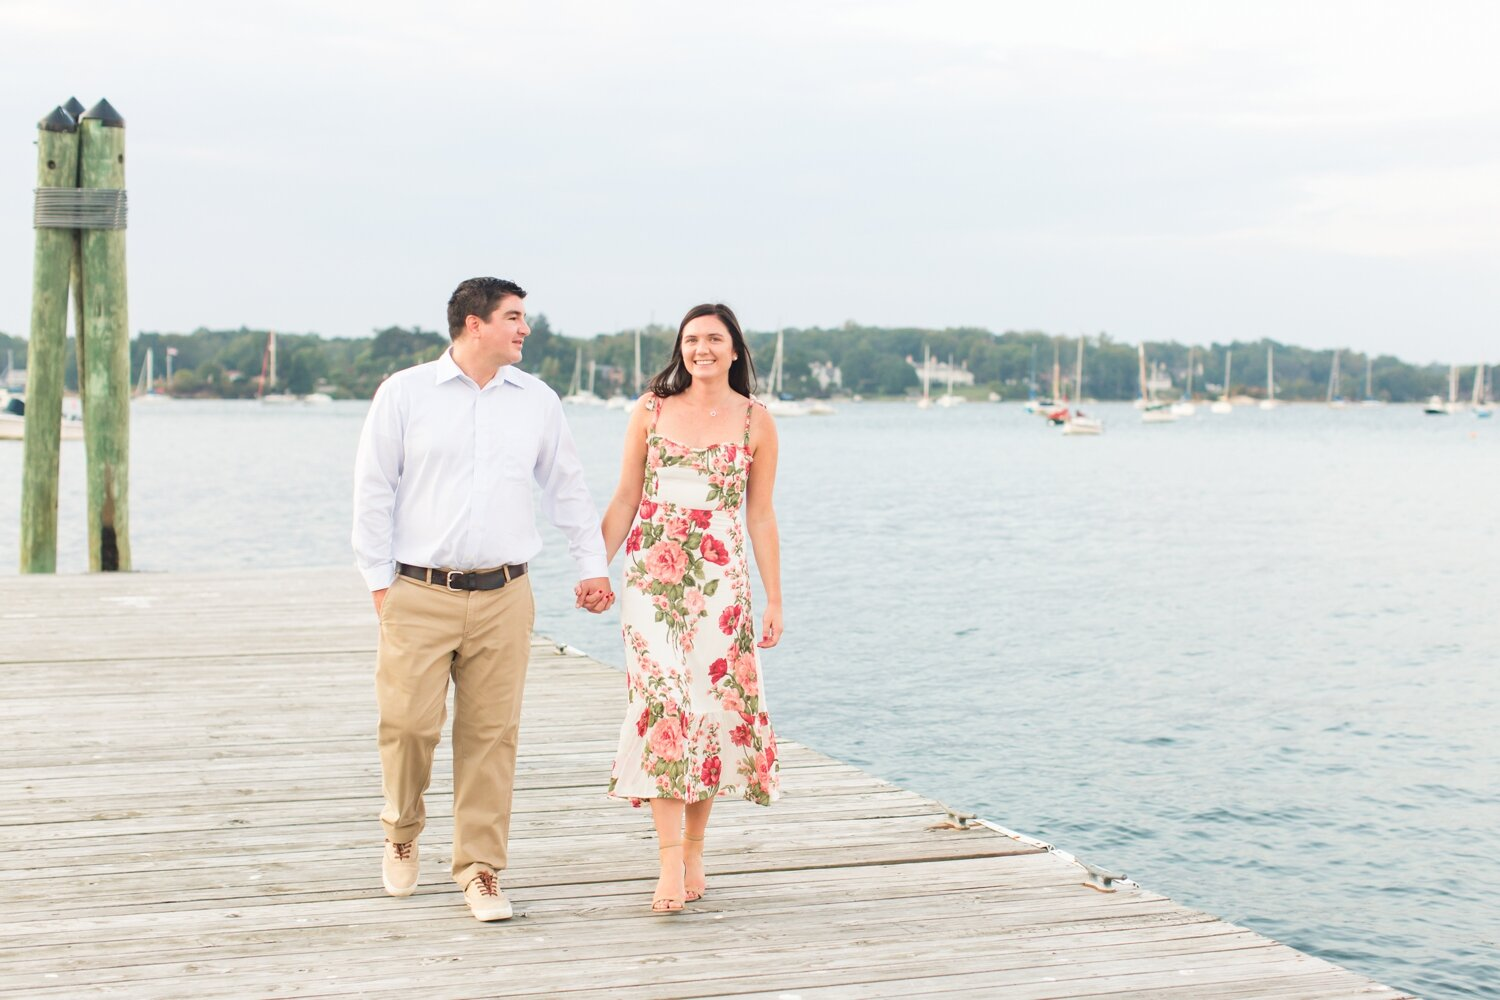 tods-point-engagement-session-greenwich-connecticut-wedding-photographer-rachel-craig-shaina-lee-photography-photo